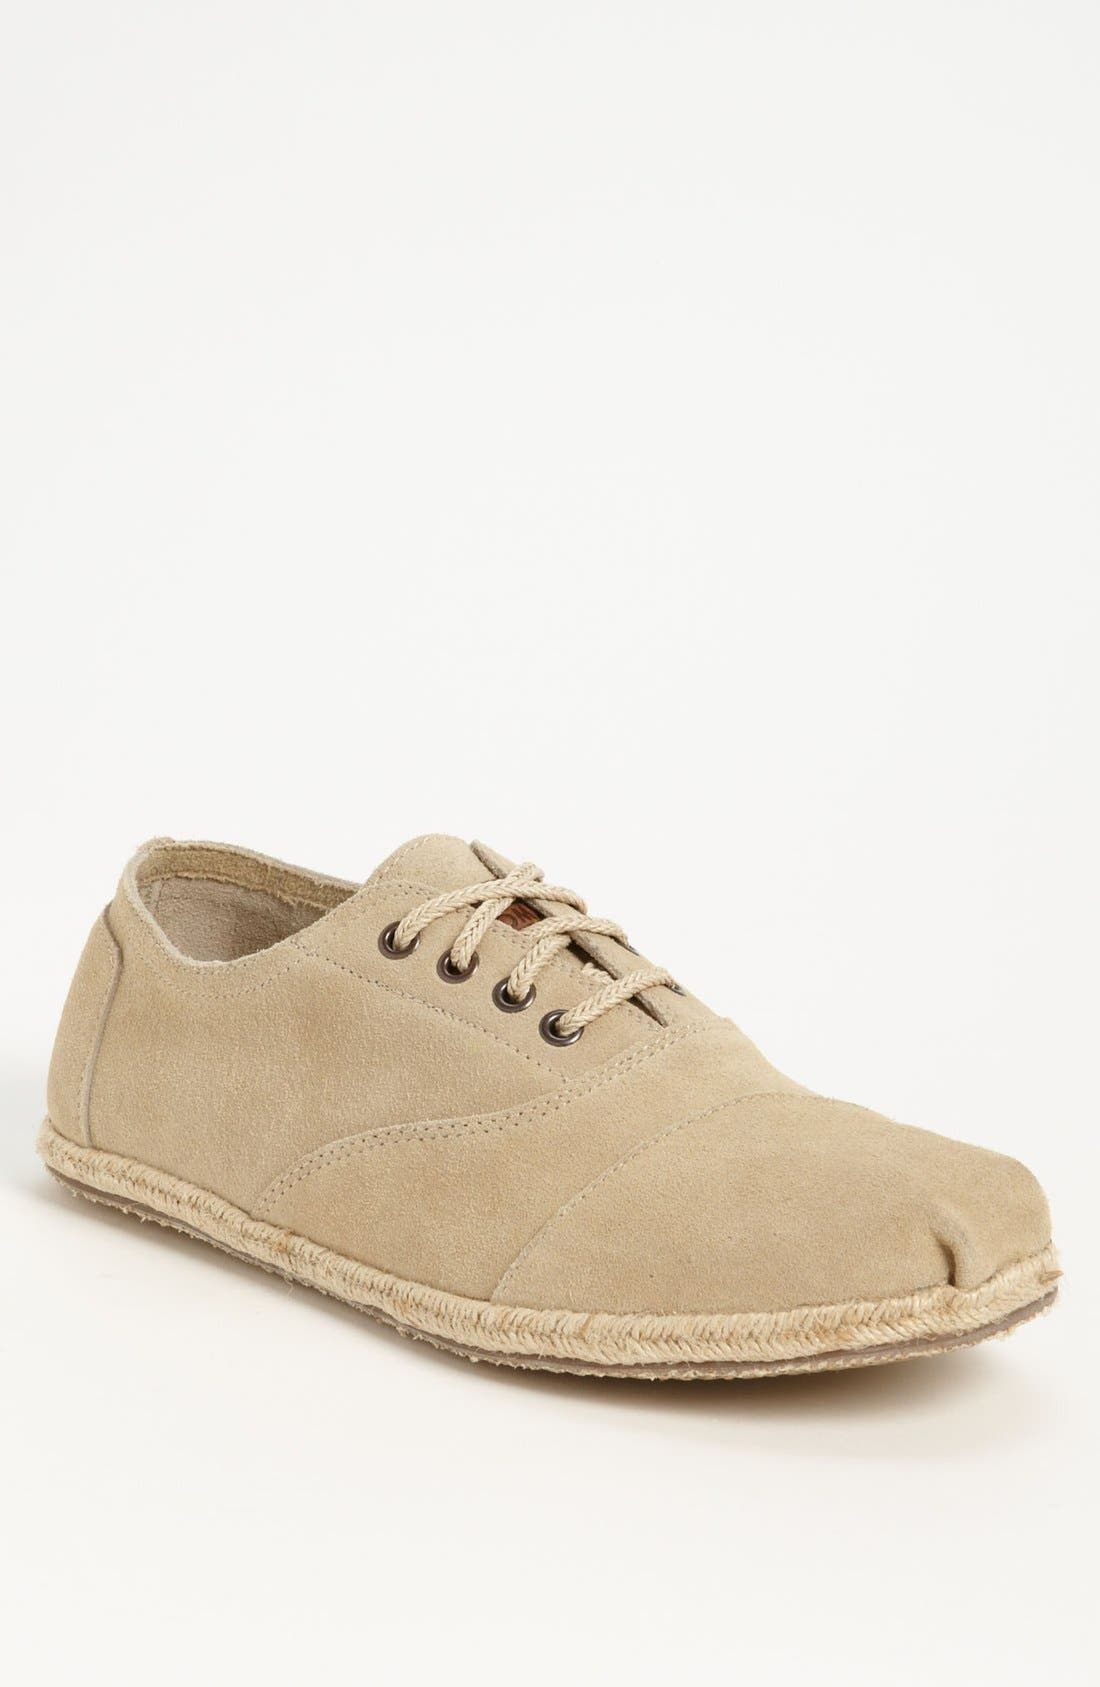 Alternate Image 1 Selected - TOMS 'Cordones' Suede Sneaker (Men)